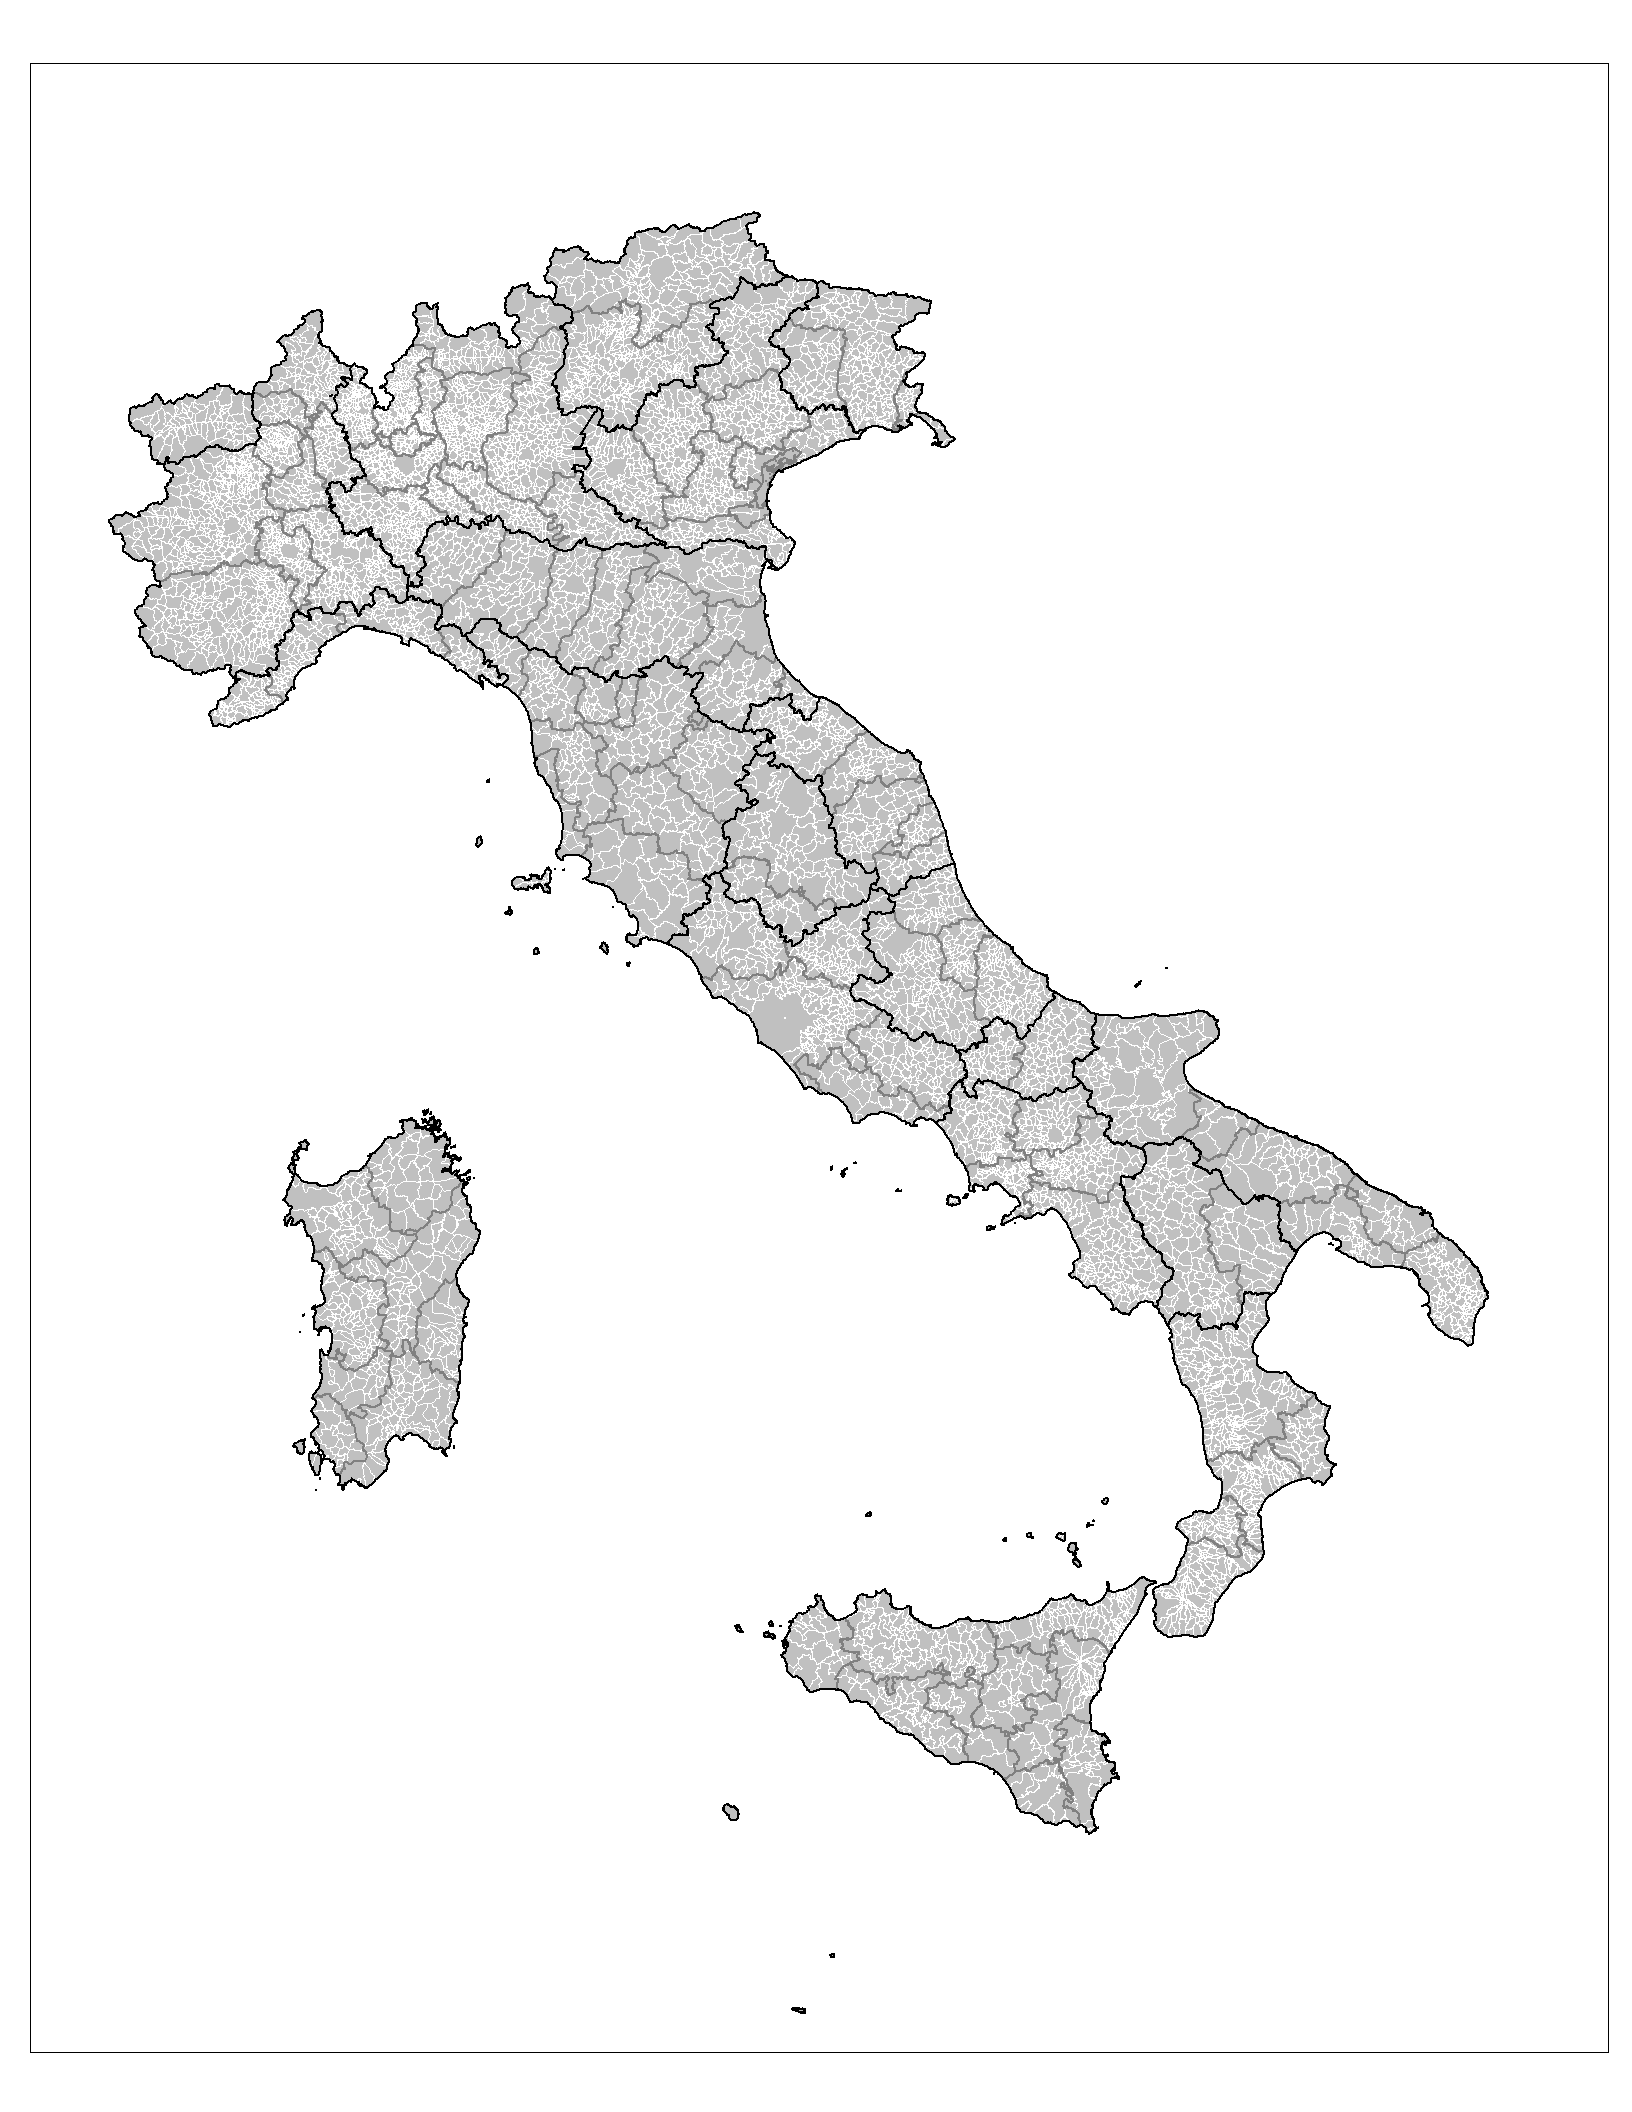 File Administrative Map Of Italy Showing Regions